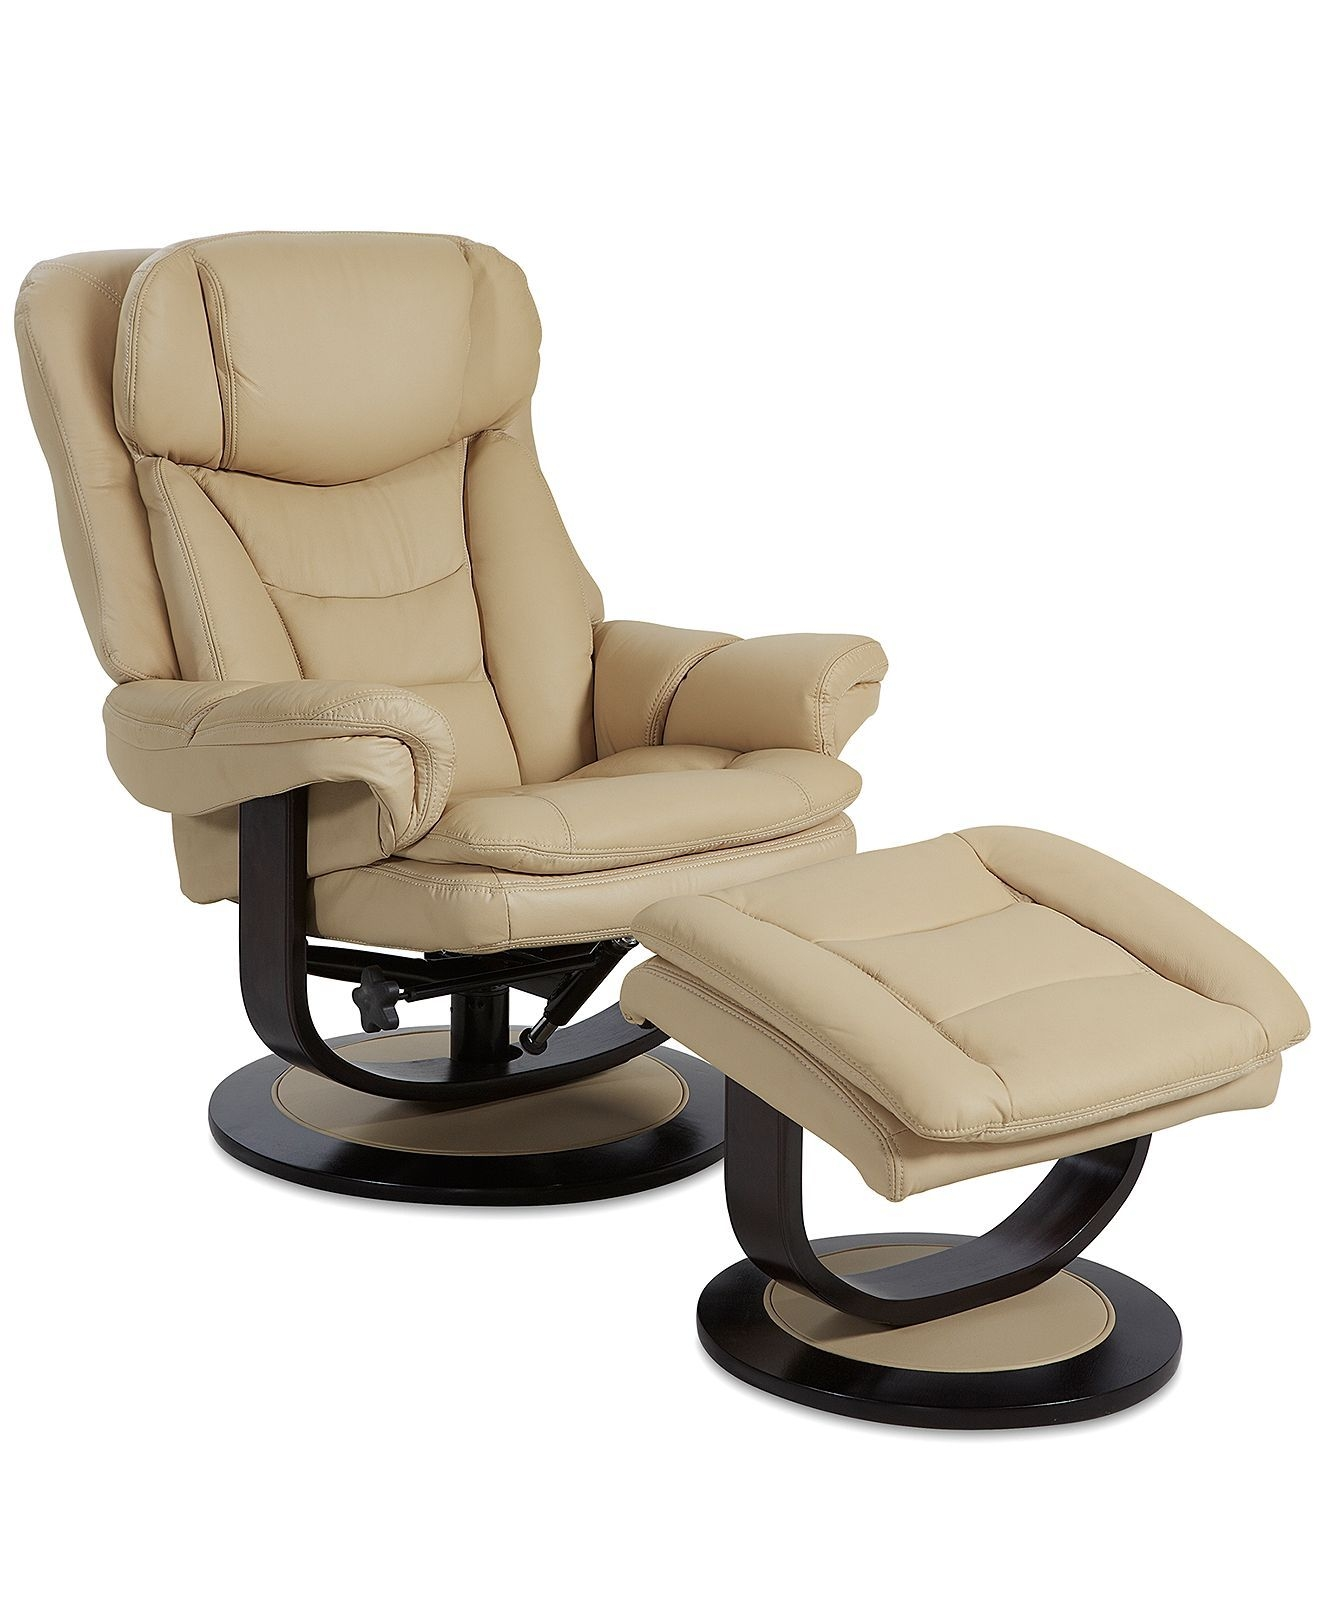 Recliners With Ottomans